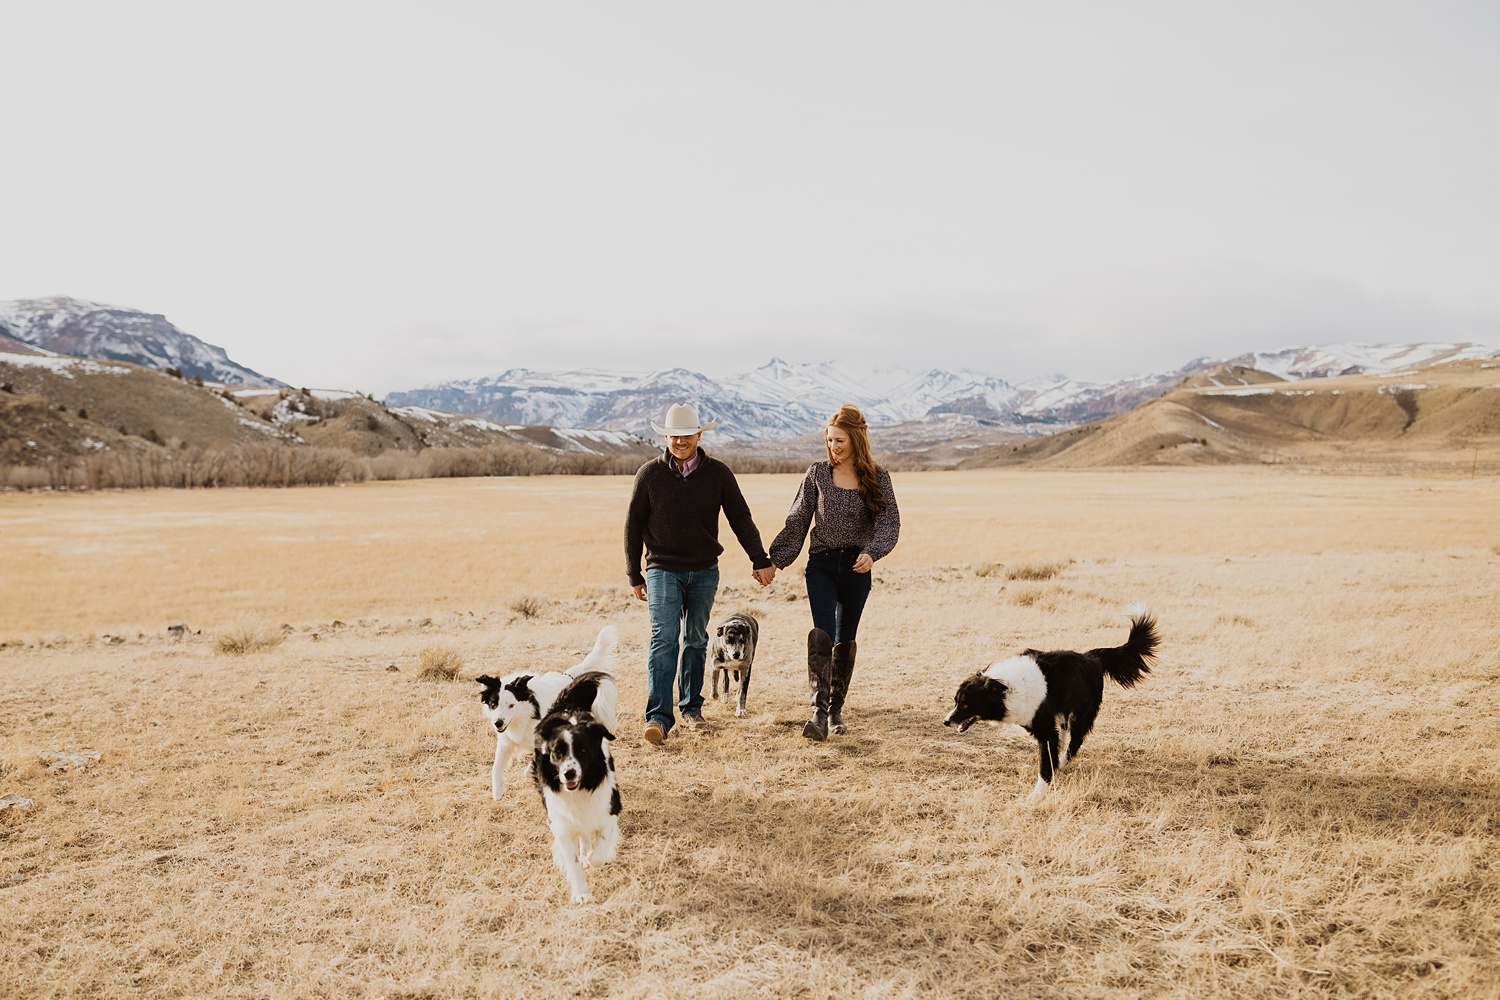 Western Engagement Photos | Wyoming Mountains | Rustic Engagement Outfits | Cowboy Wedding Inspiration | Ranch Engagement Photos | Ranch Dogs Engagement Pictures | Cassie Madden Photography